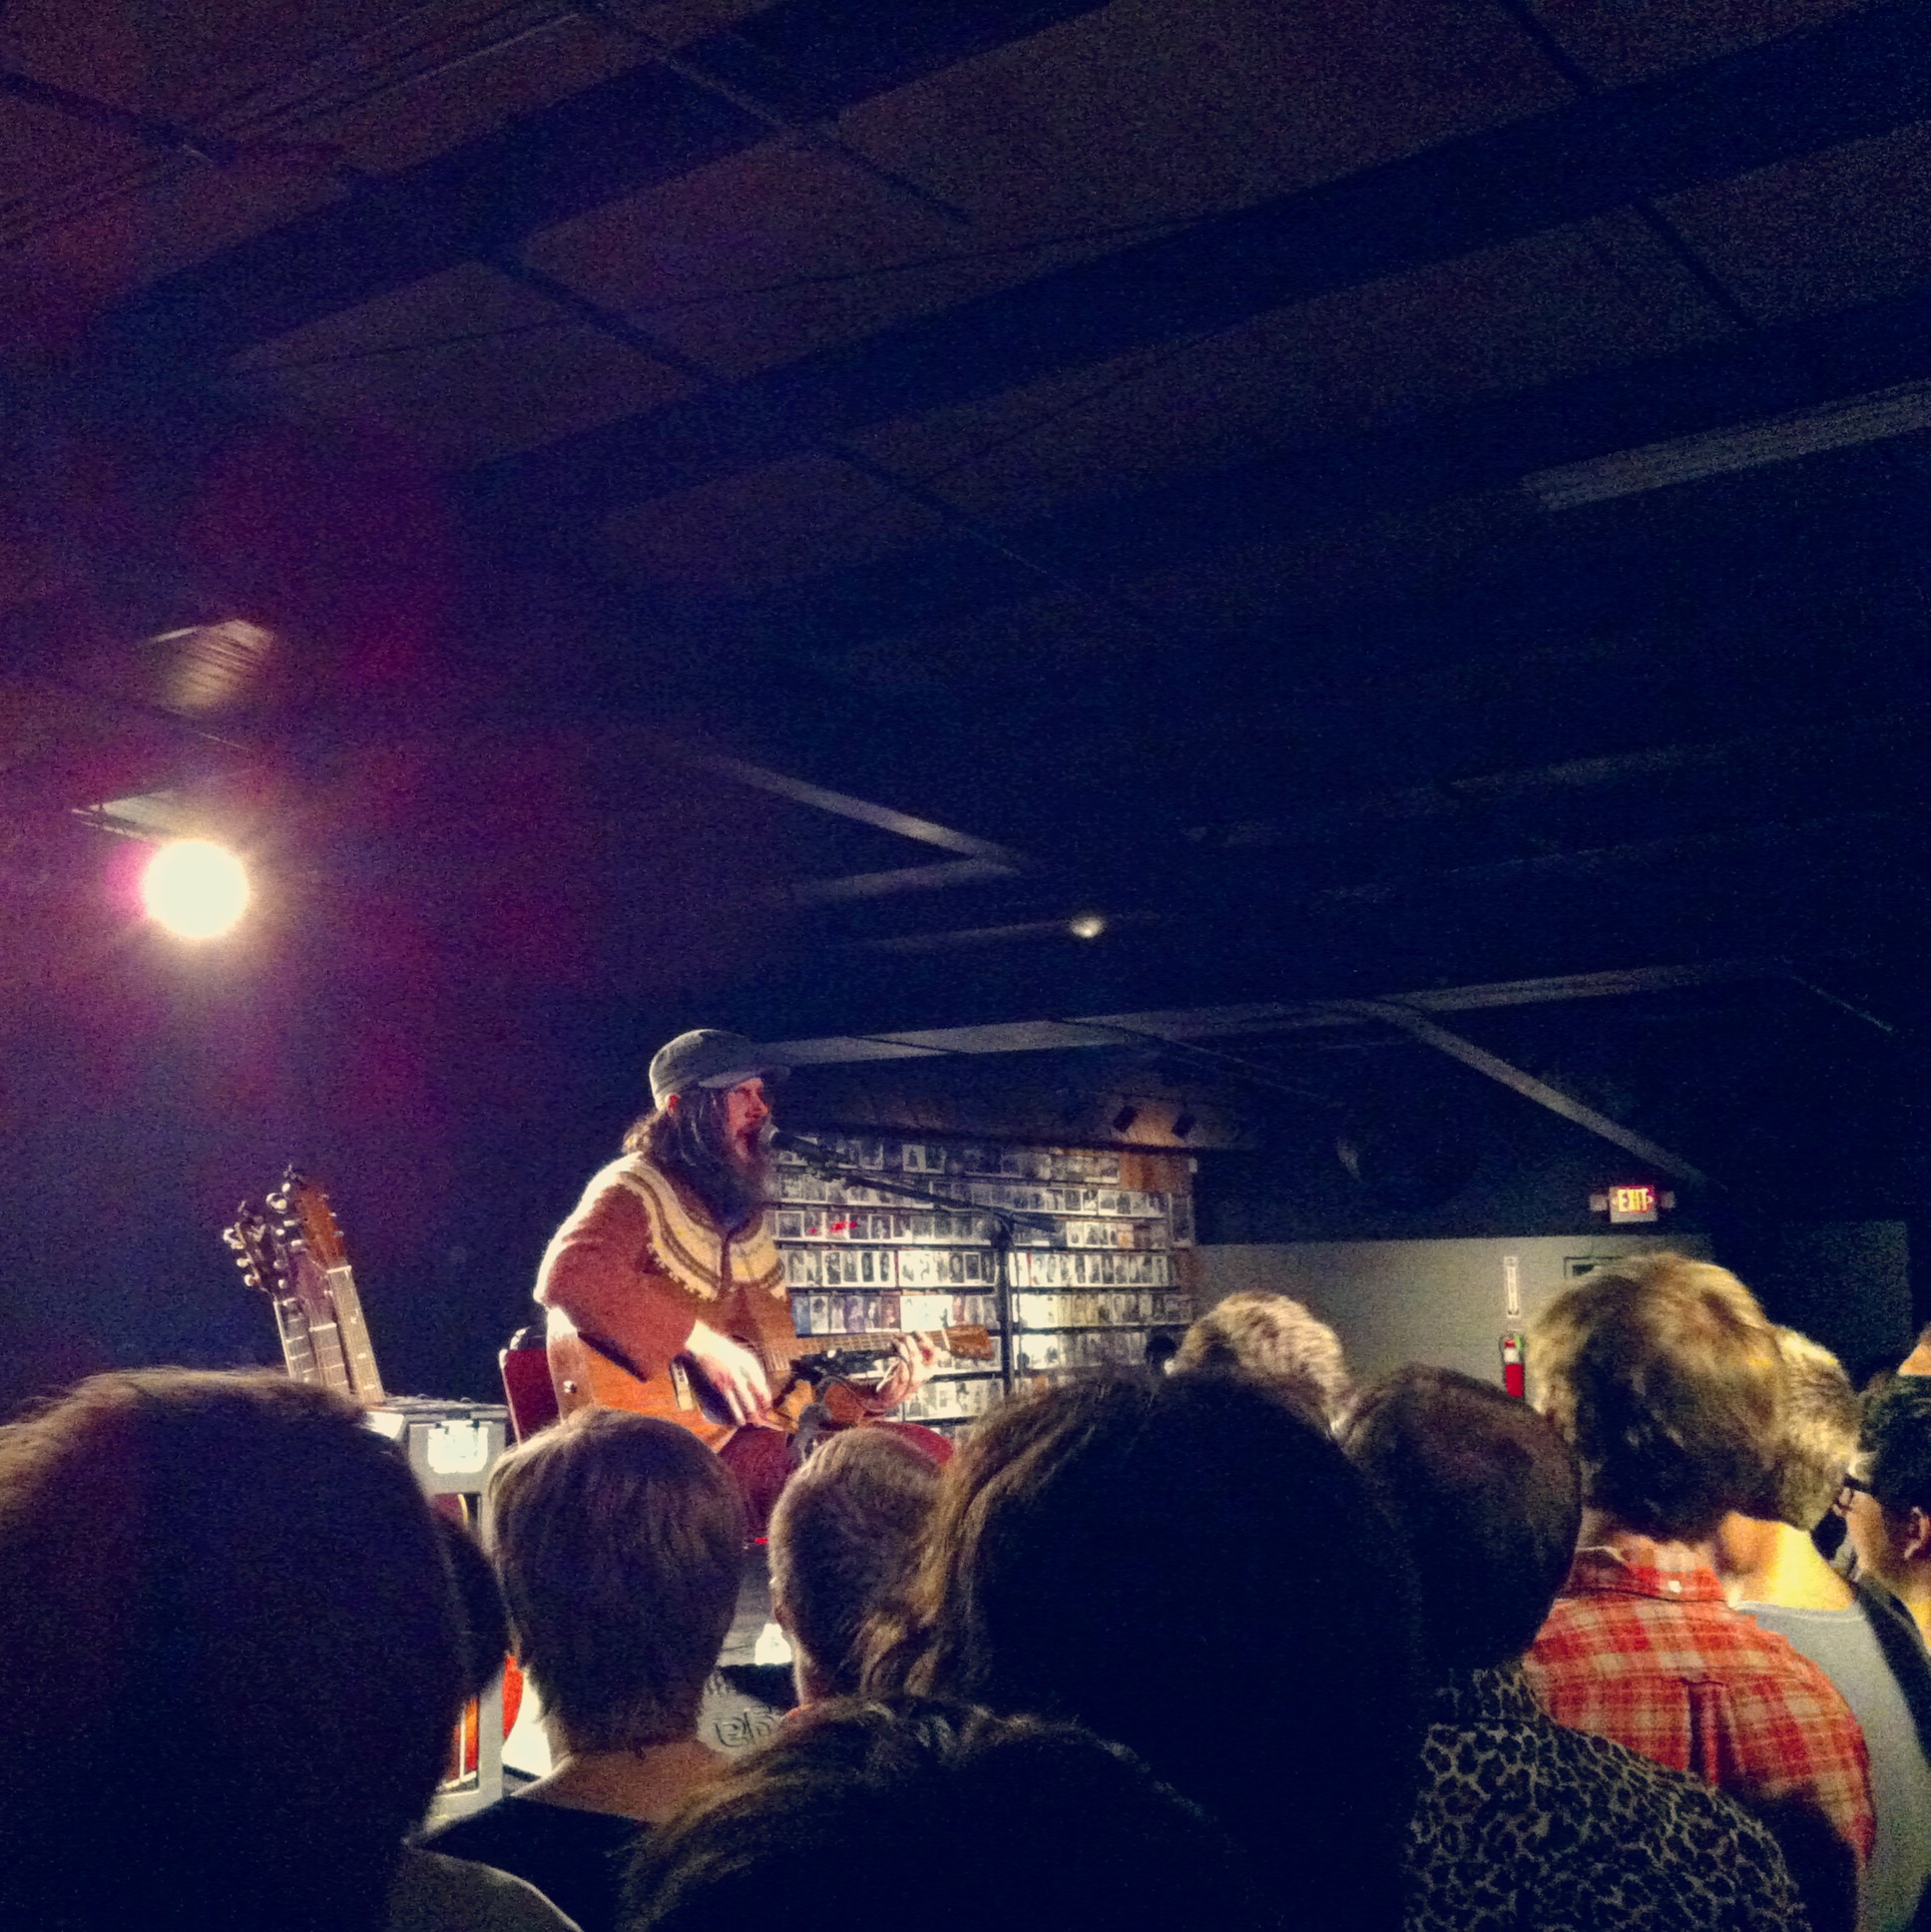 Jeff Mangum during his solo acoustic tour at the Diamond Ballroom this past Saturday. Photo by Helen Grant